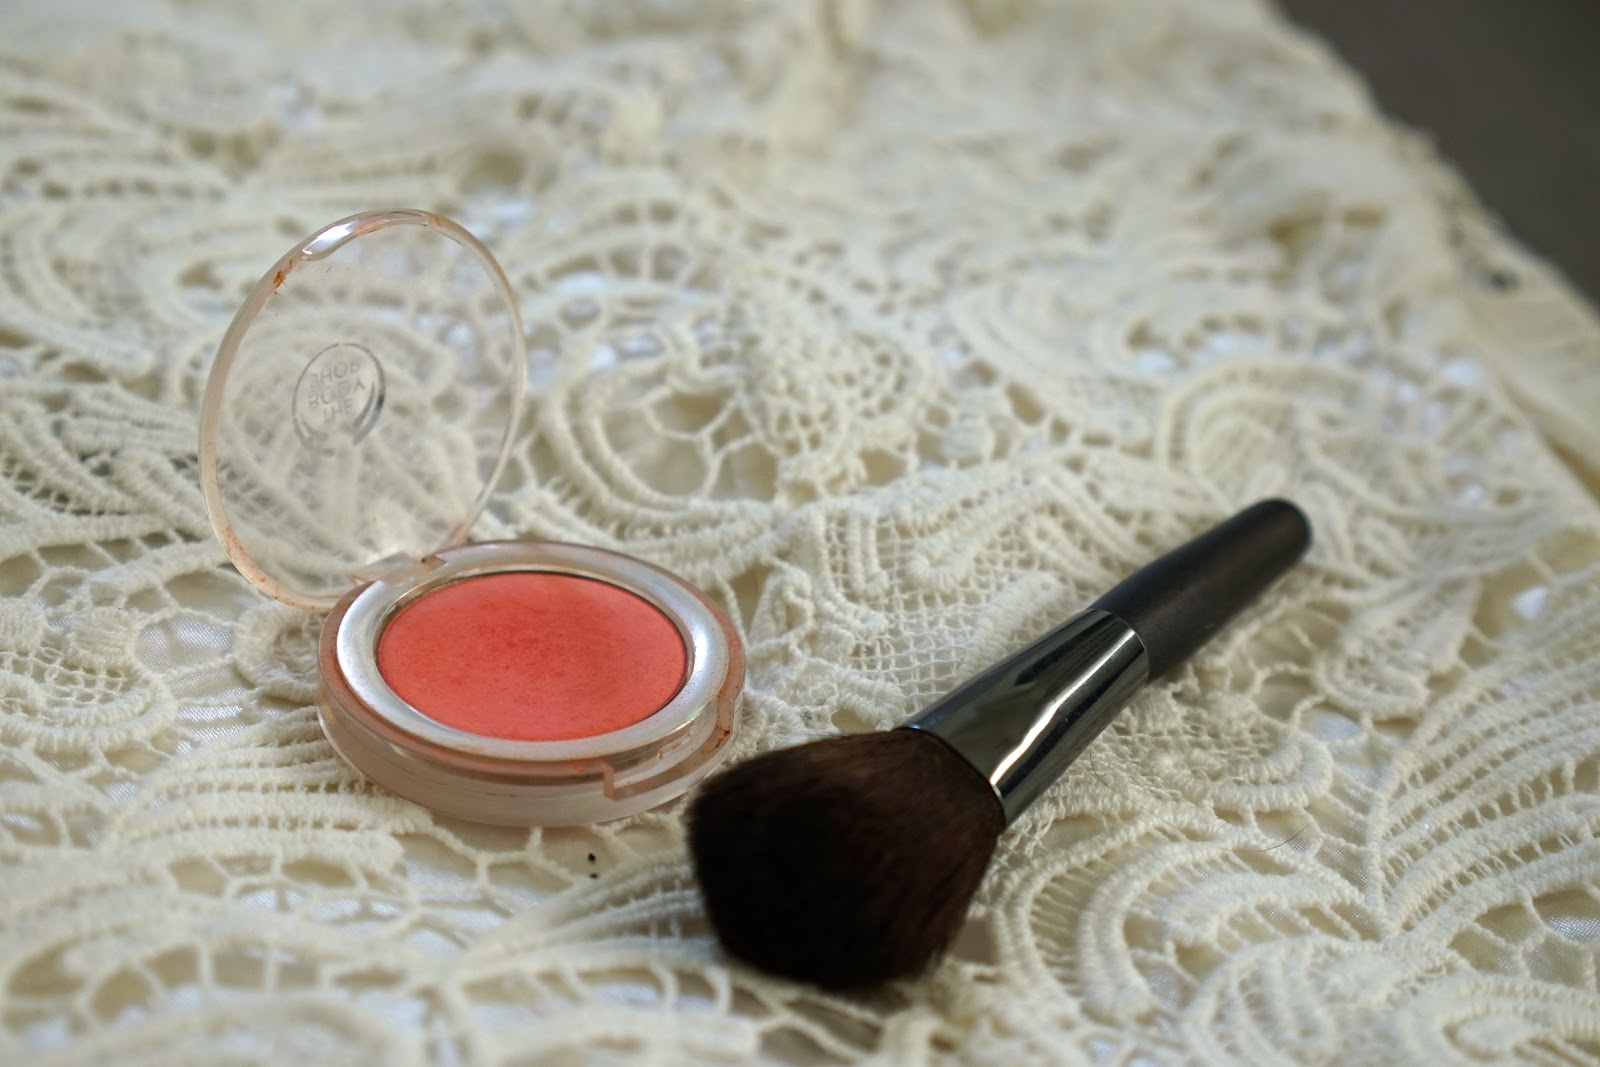 the body shop blush in macaroon